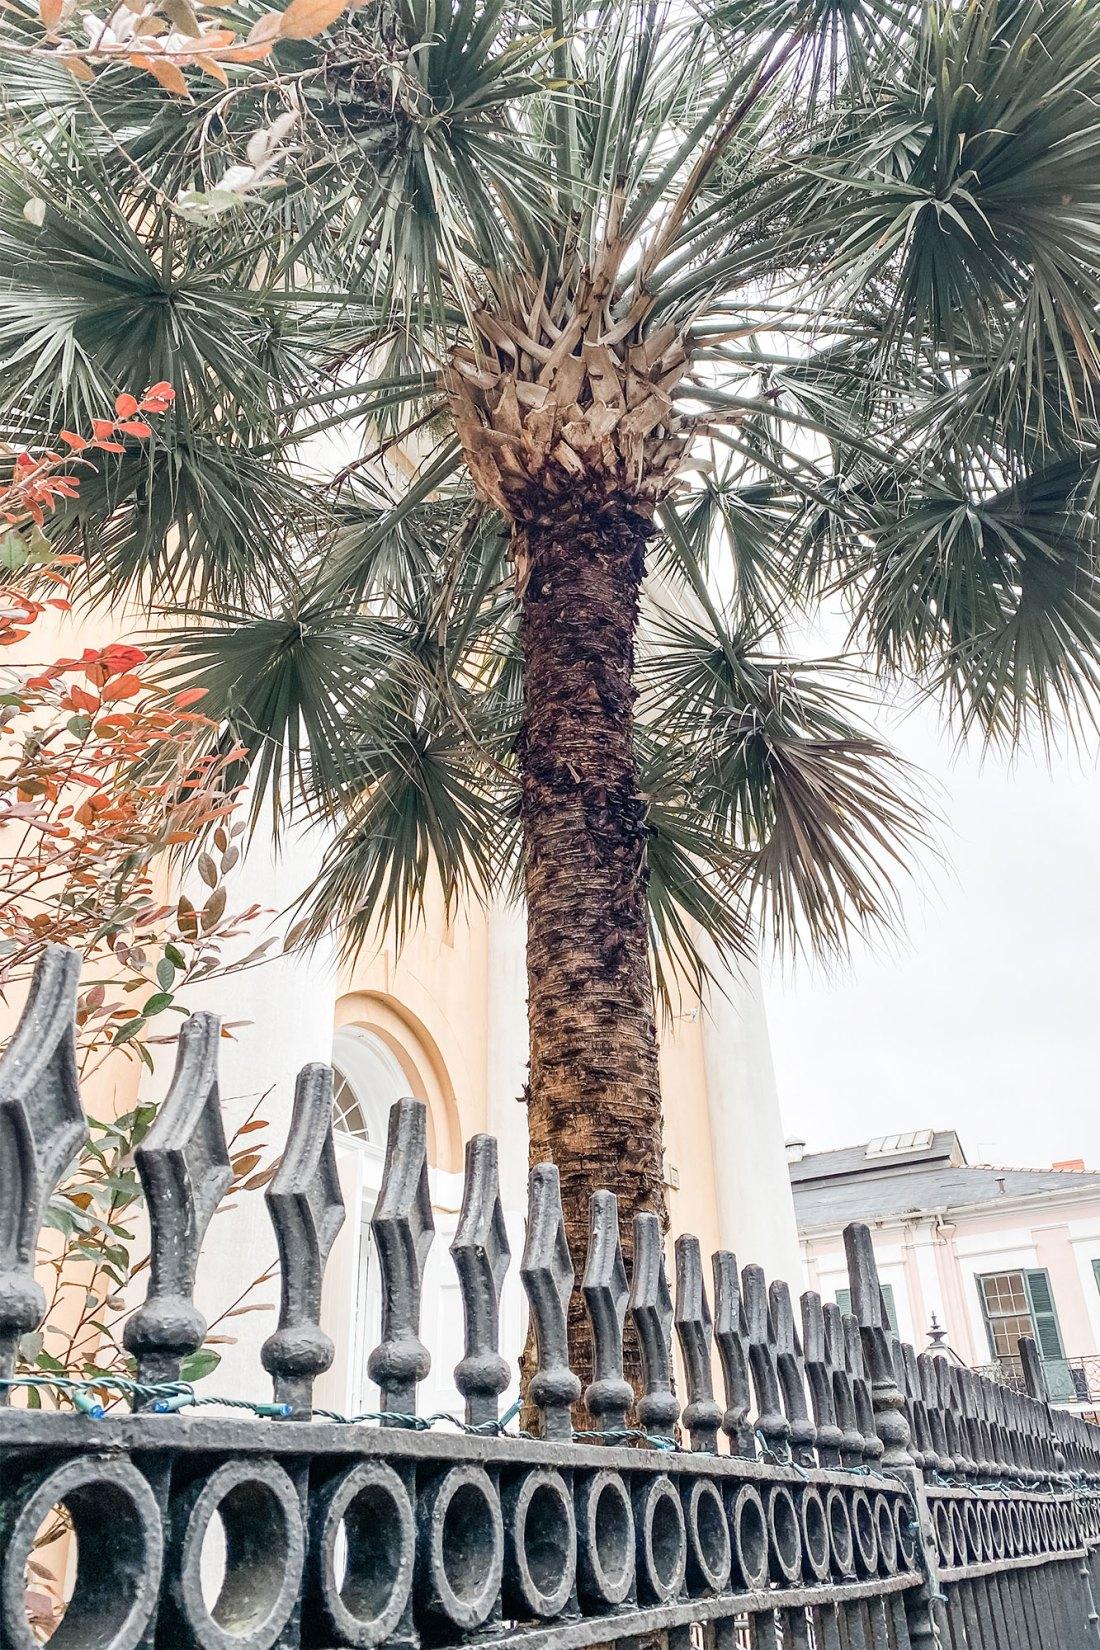 Palm tree next to building with wrought iron fence in New Orleans